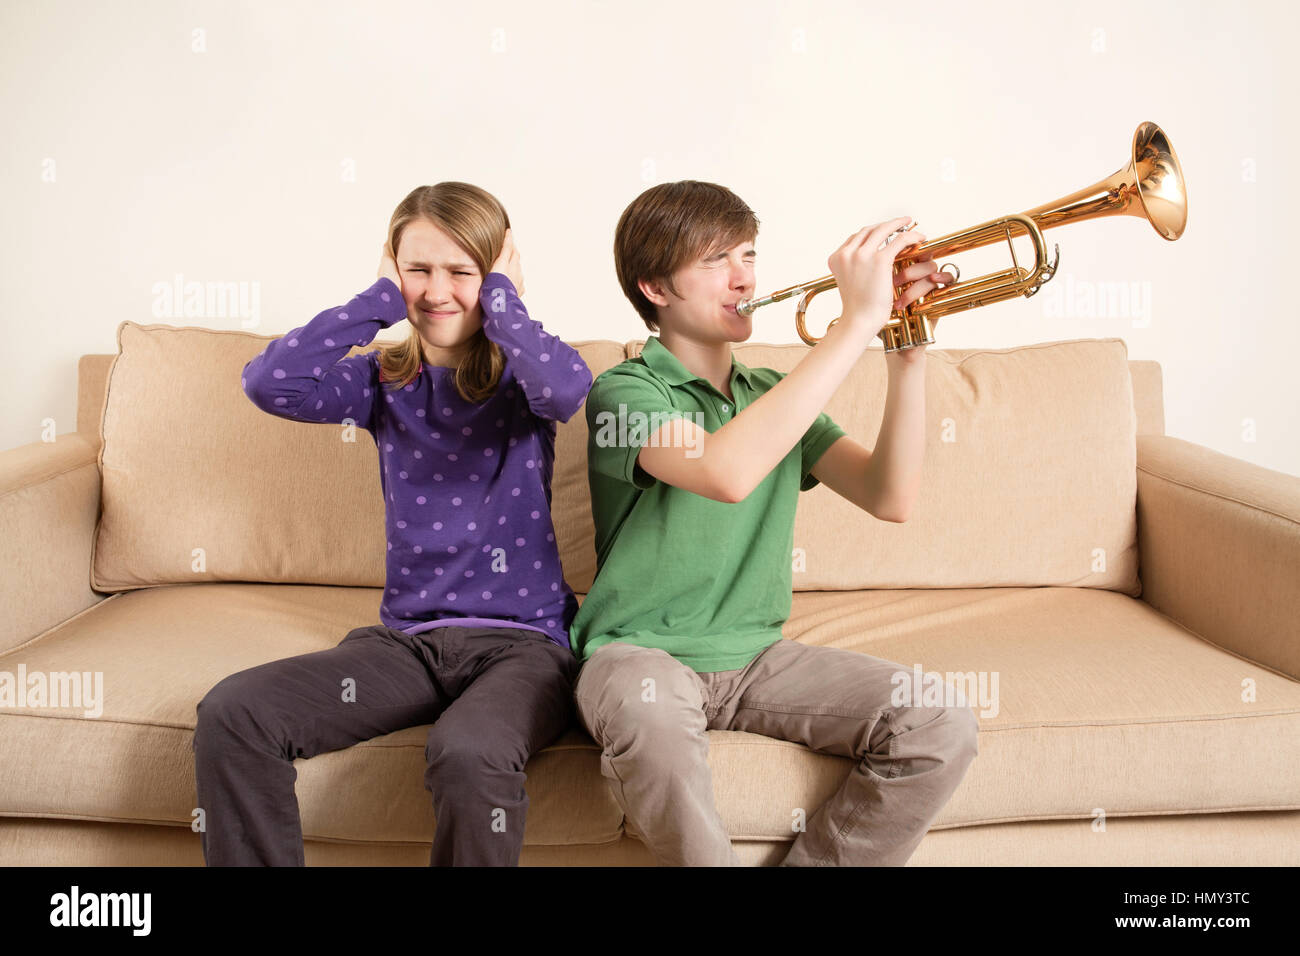 Photo of a brother playing his trumpet too loudly, or badly, and annoying his sister. - Stock Image